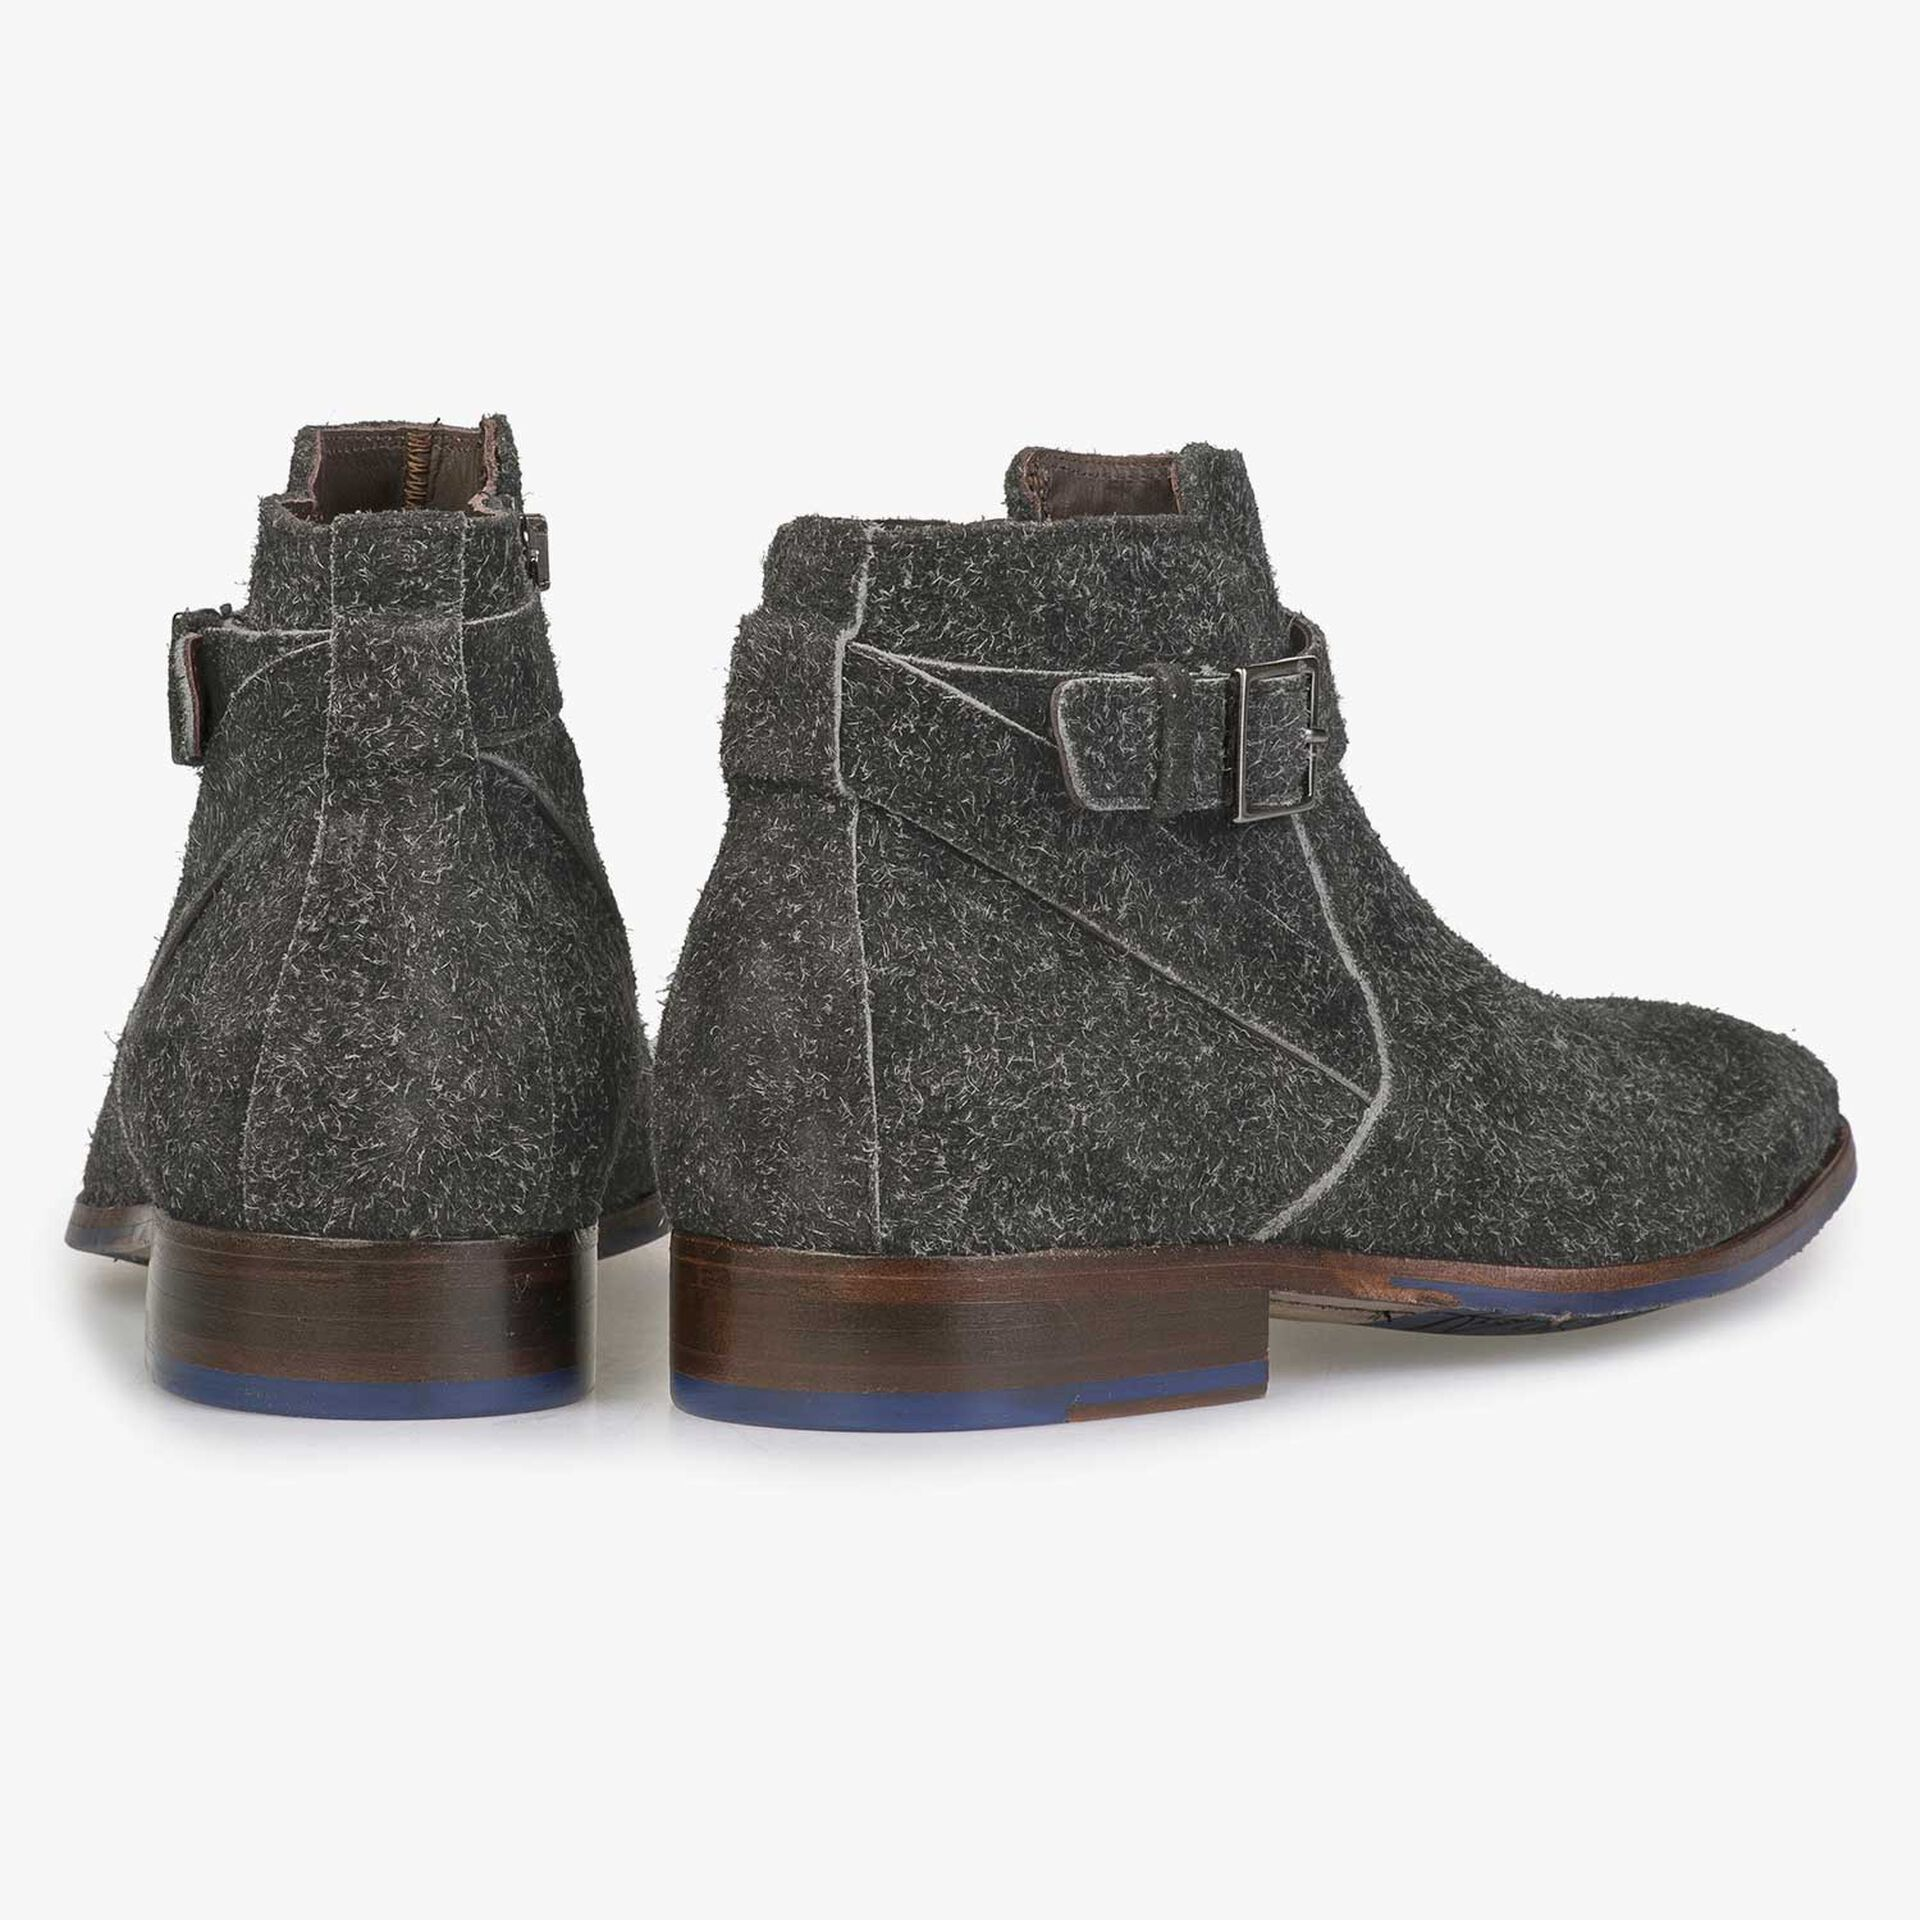 Grey rough suede leather ankle boot